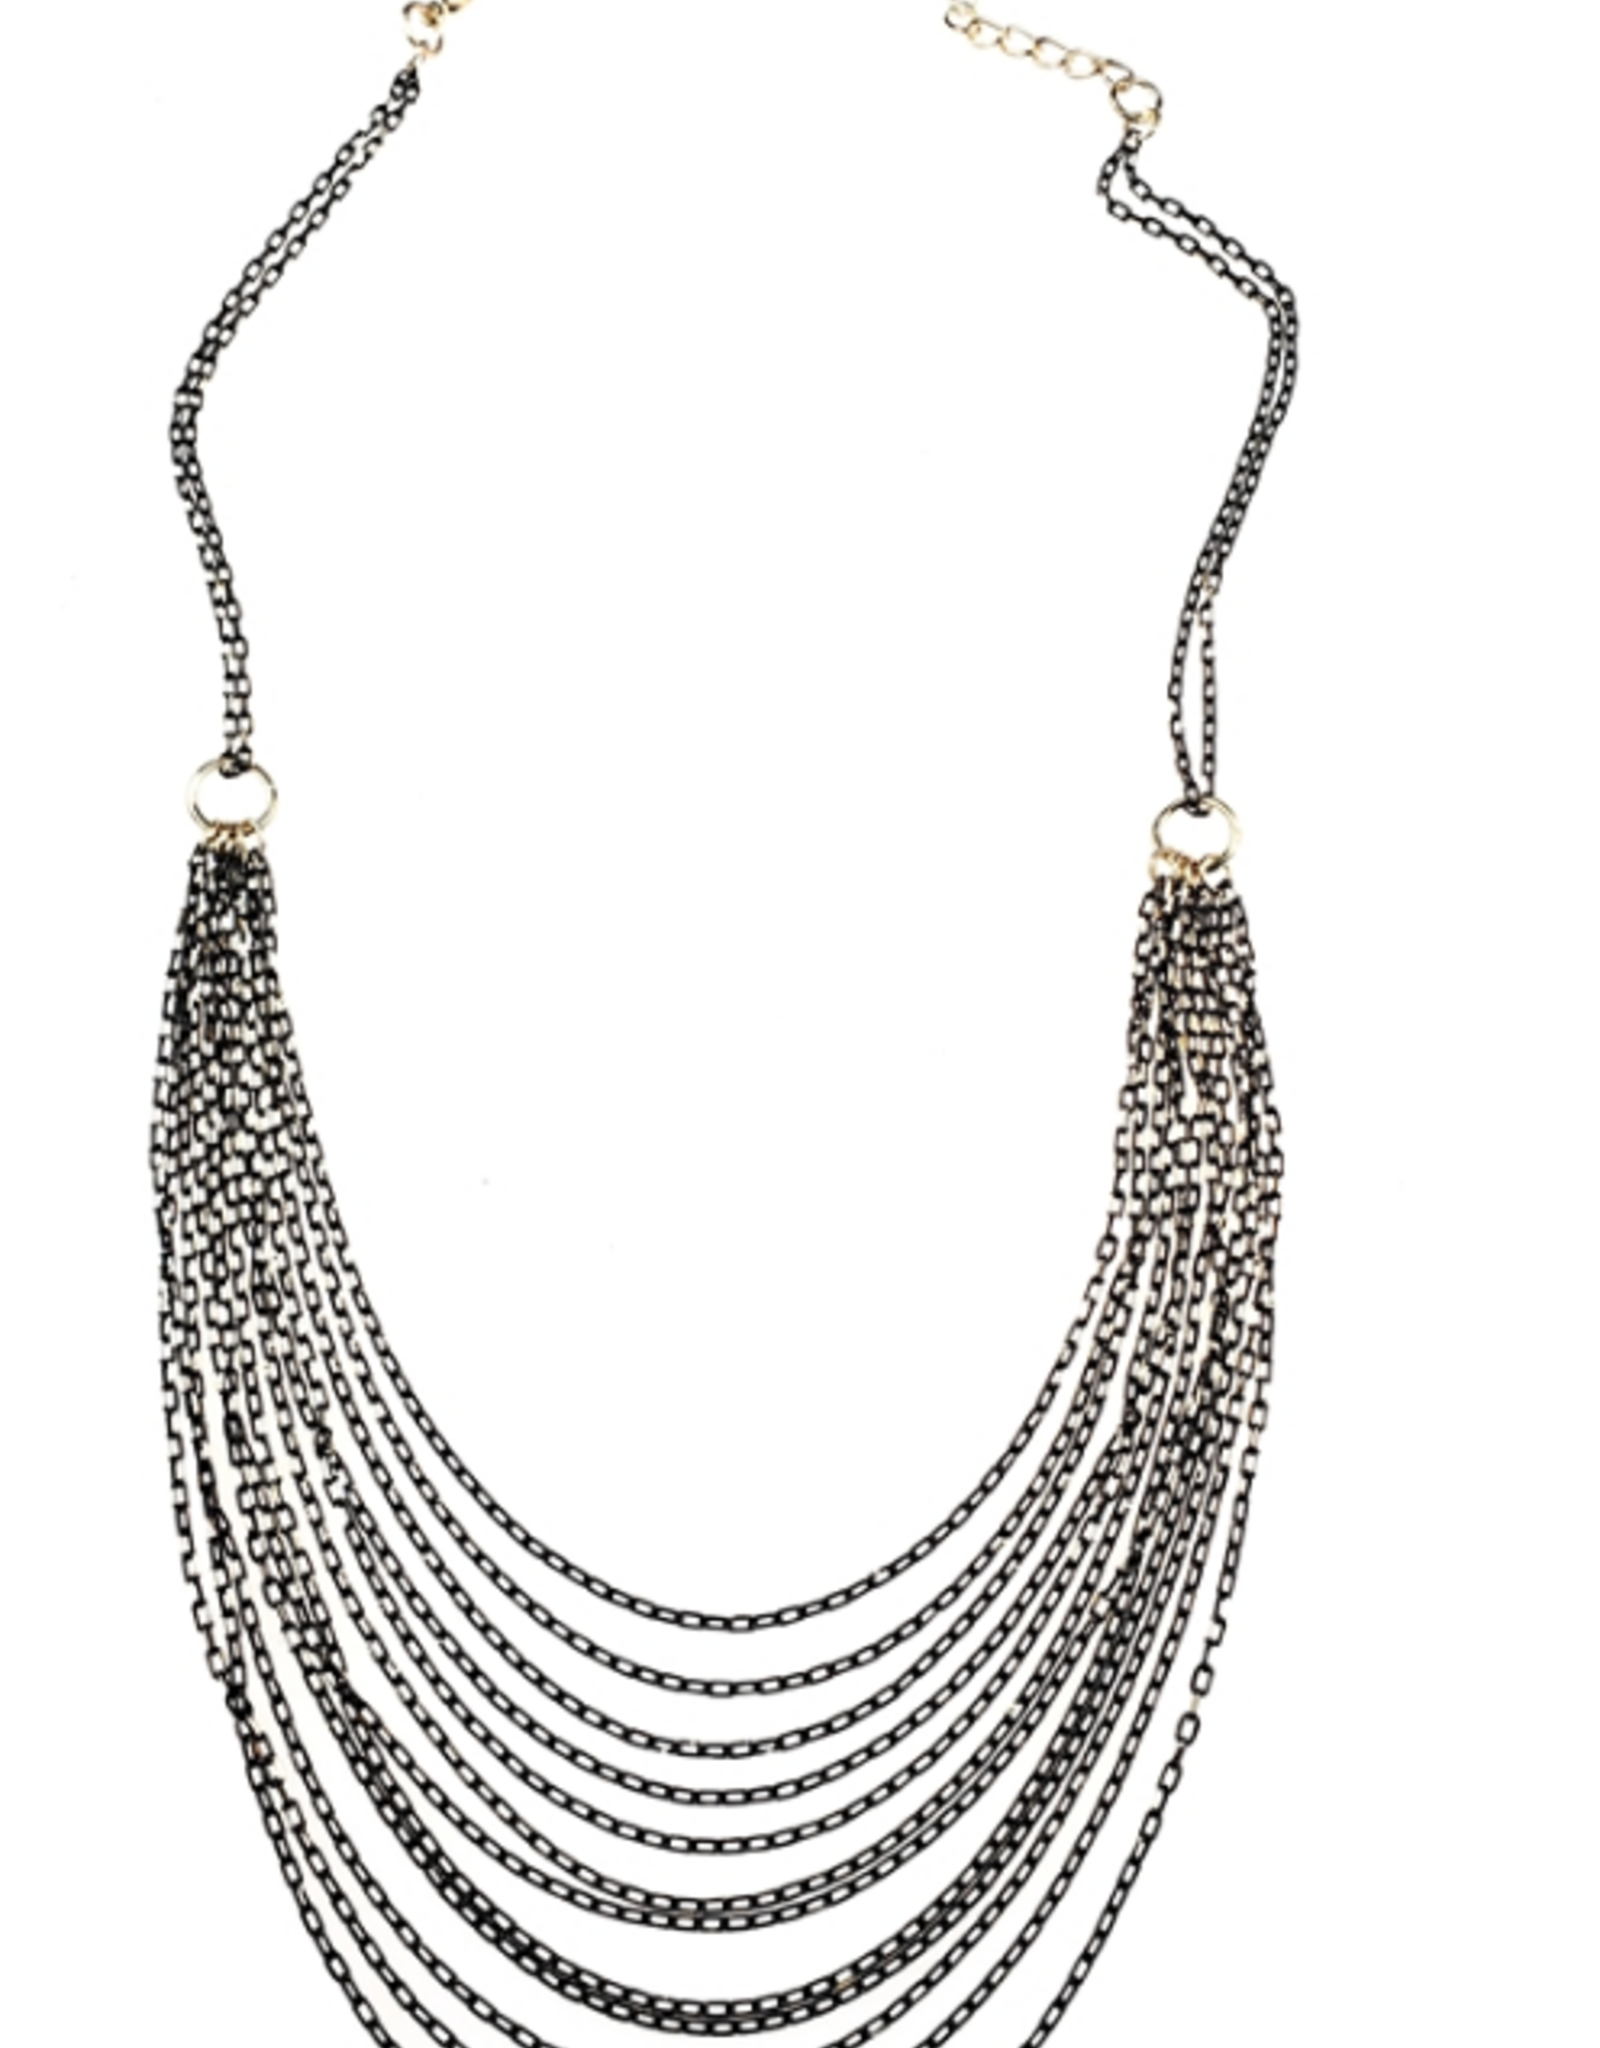 Sweet Lola Black and Gold Layered Chain Necklace